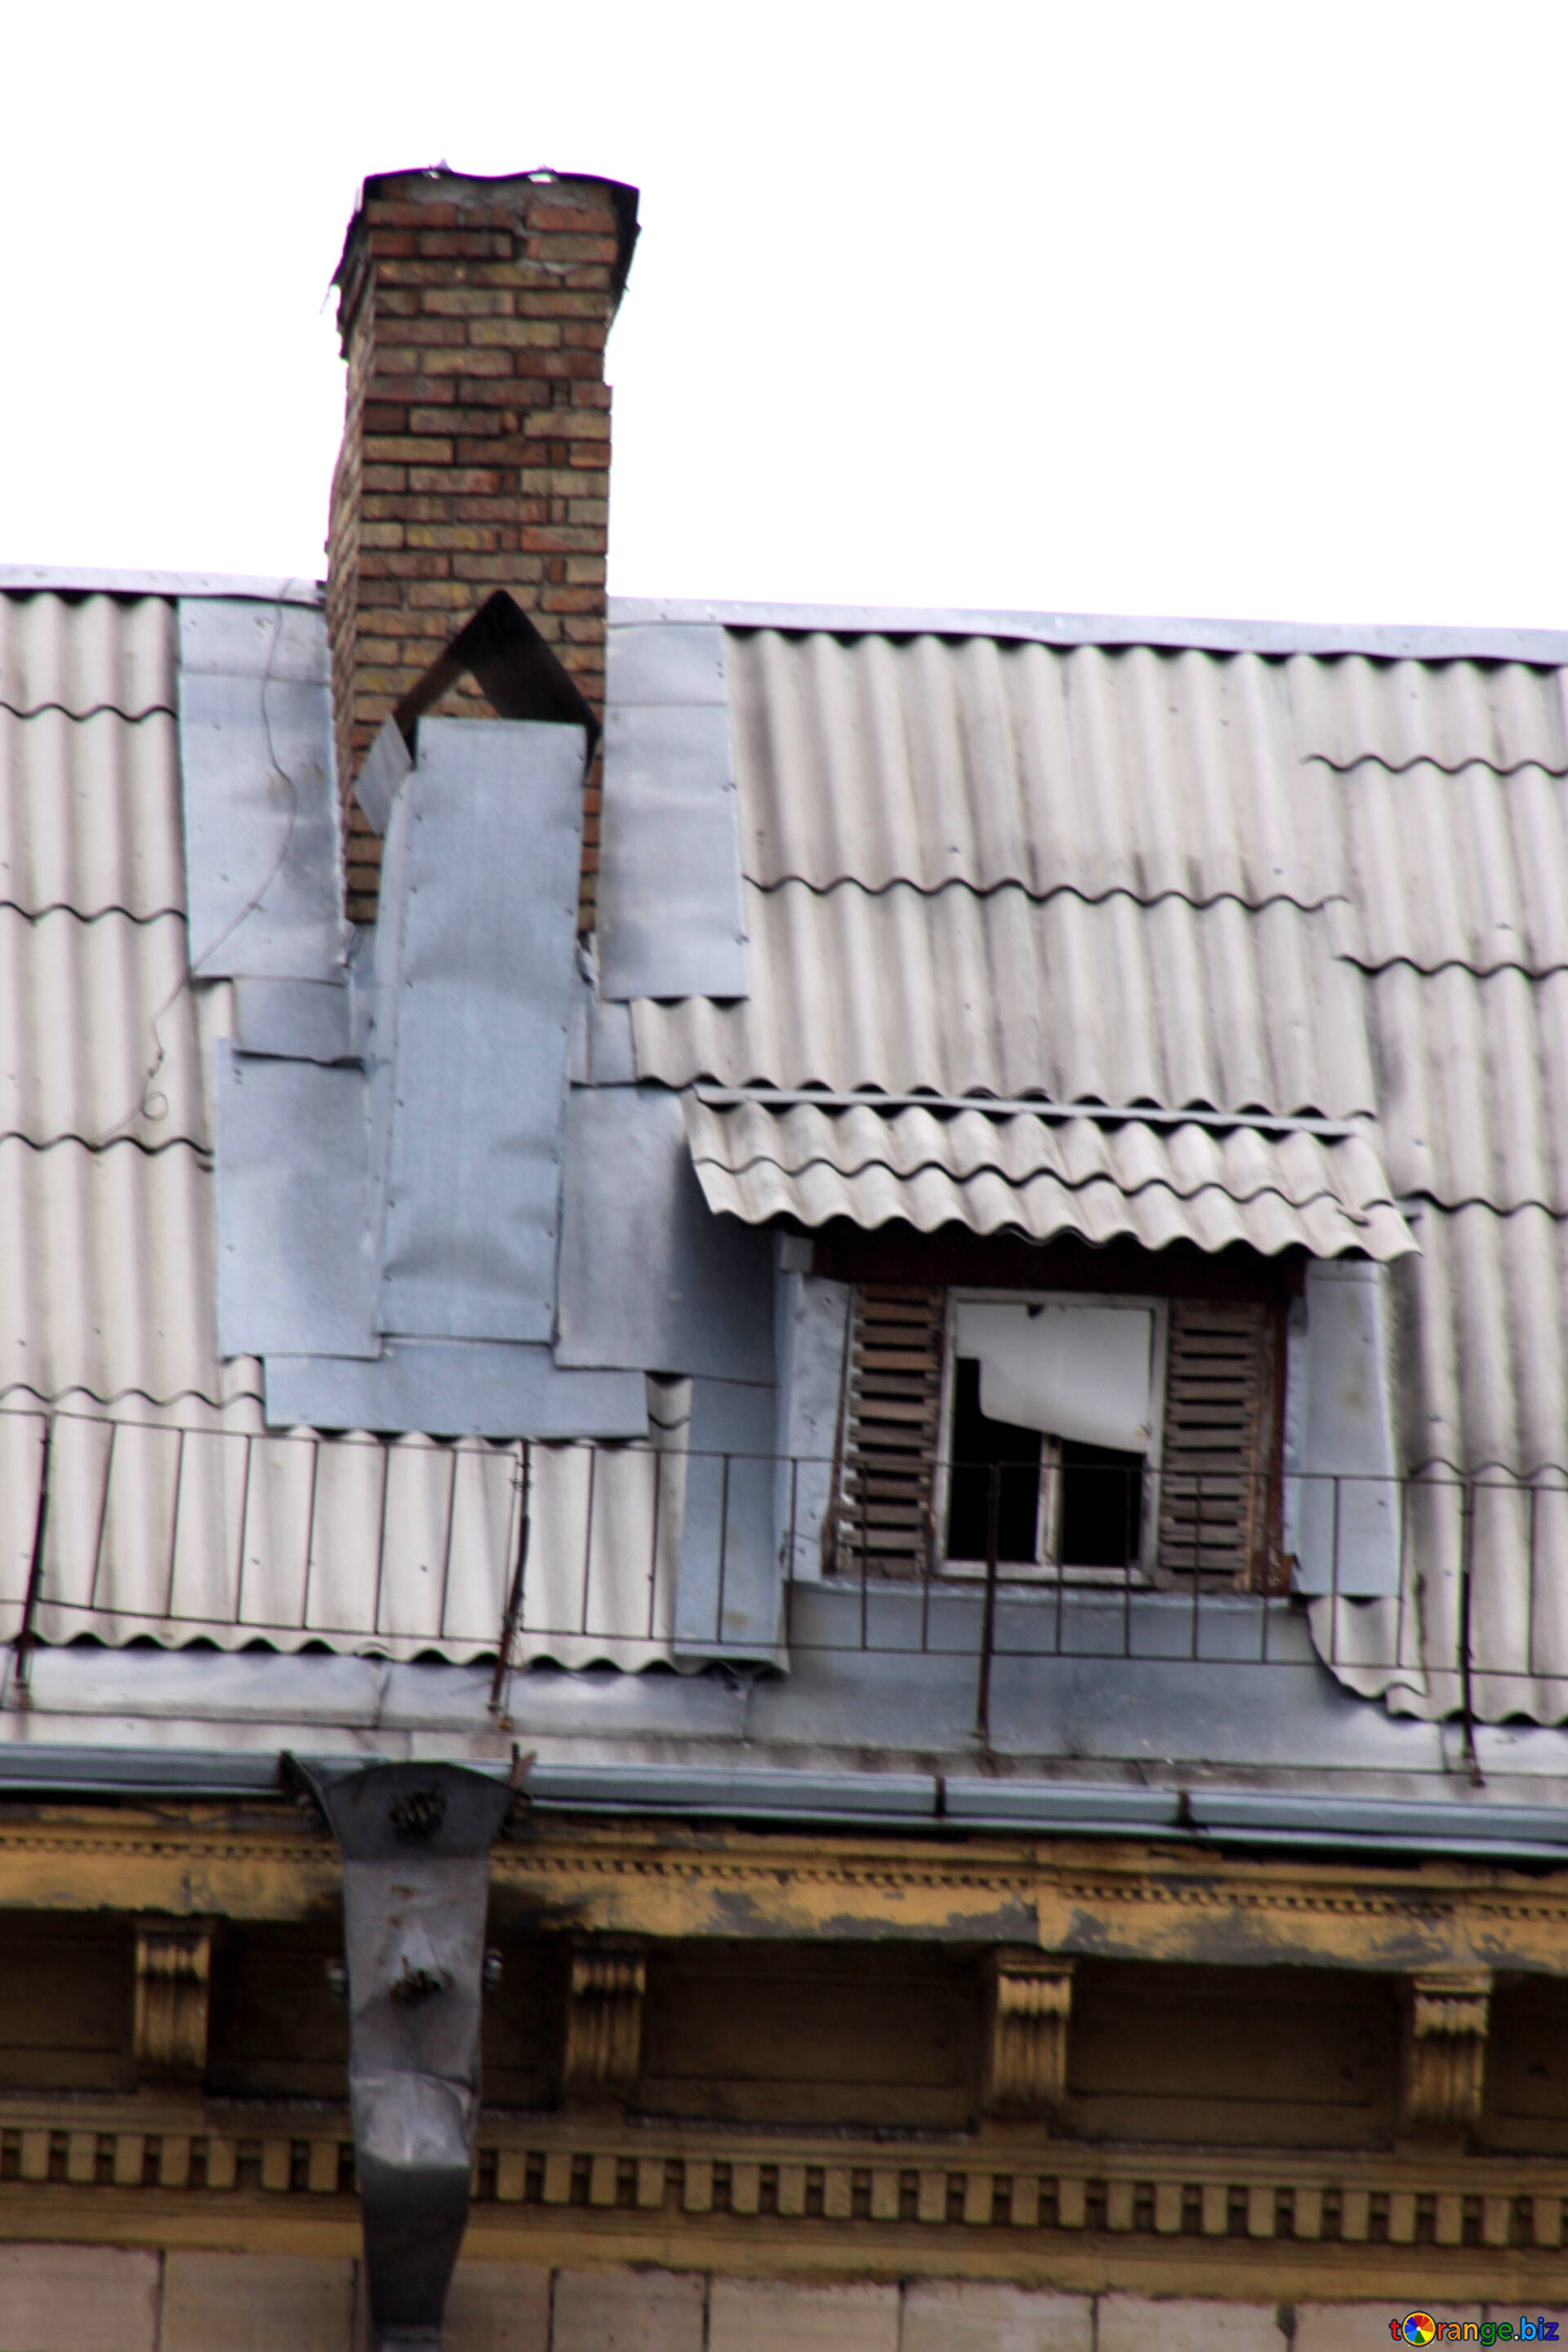 Ventilation ventilation and attic window on the roof energy № 1367